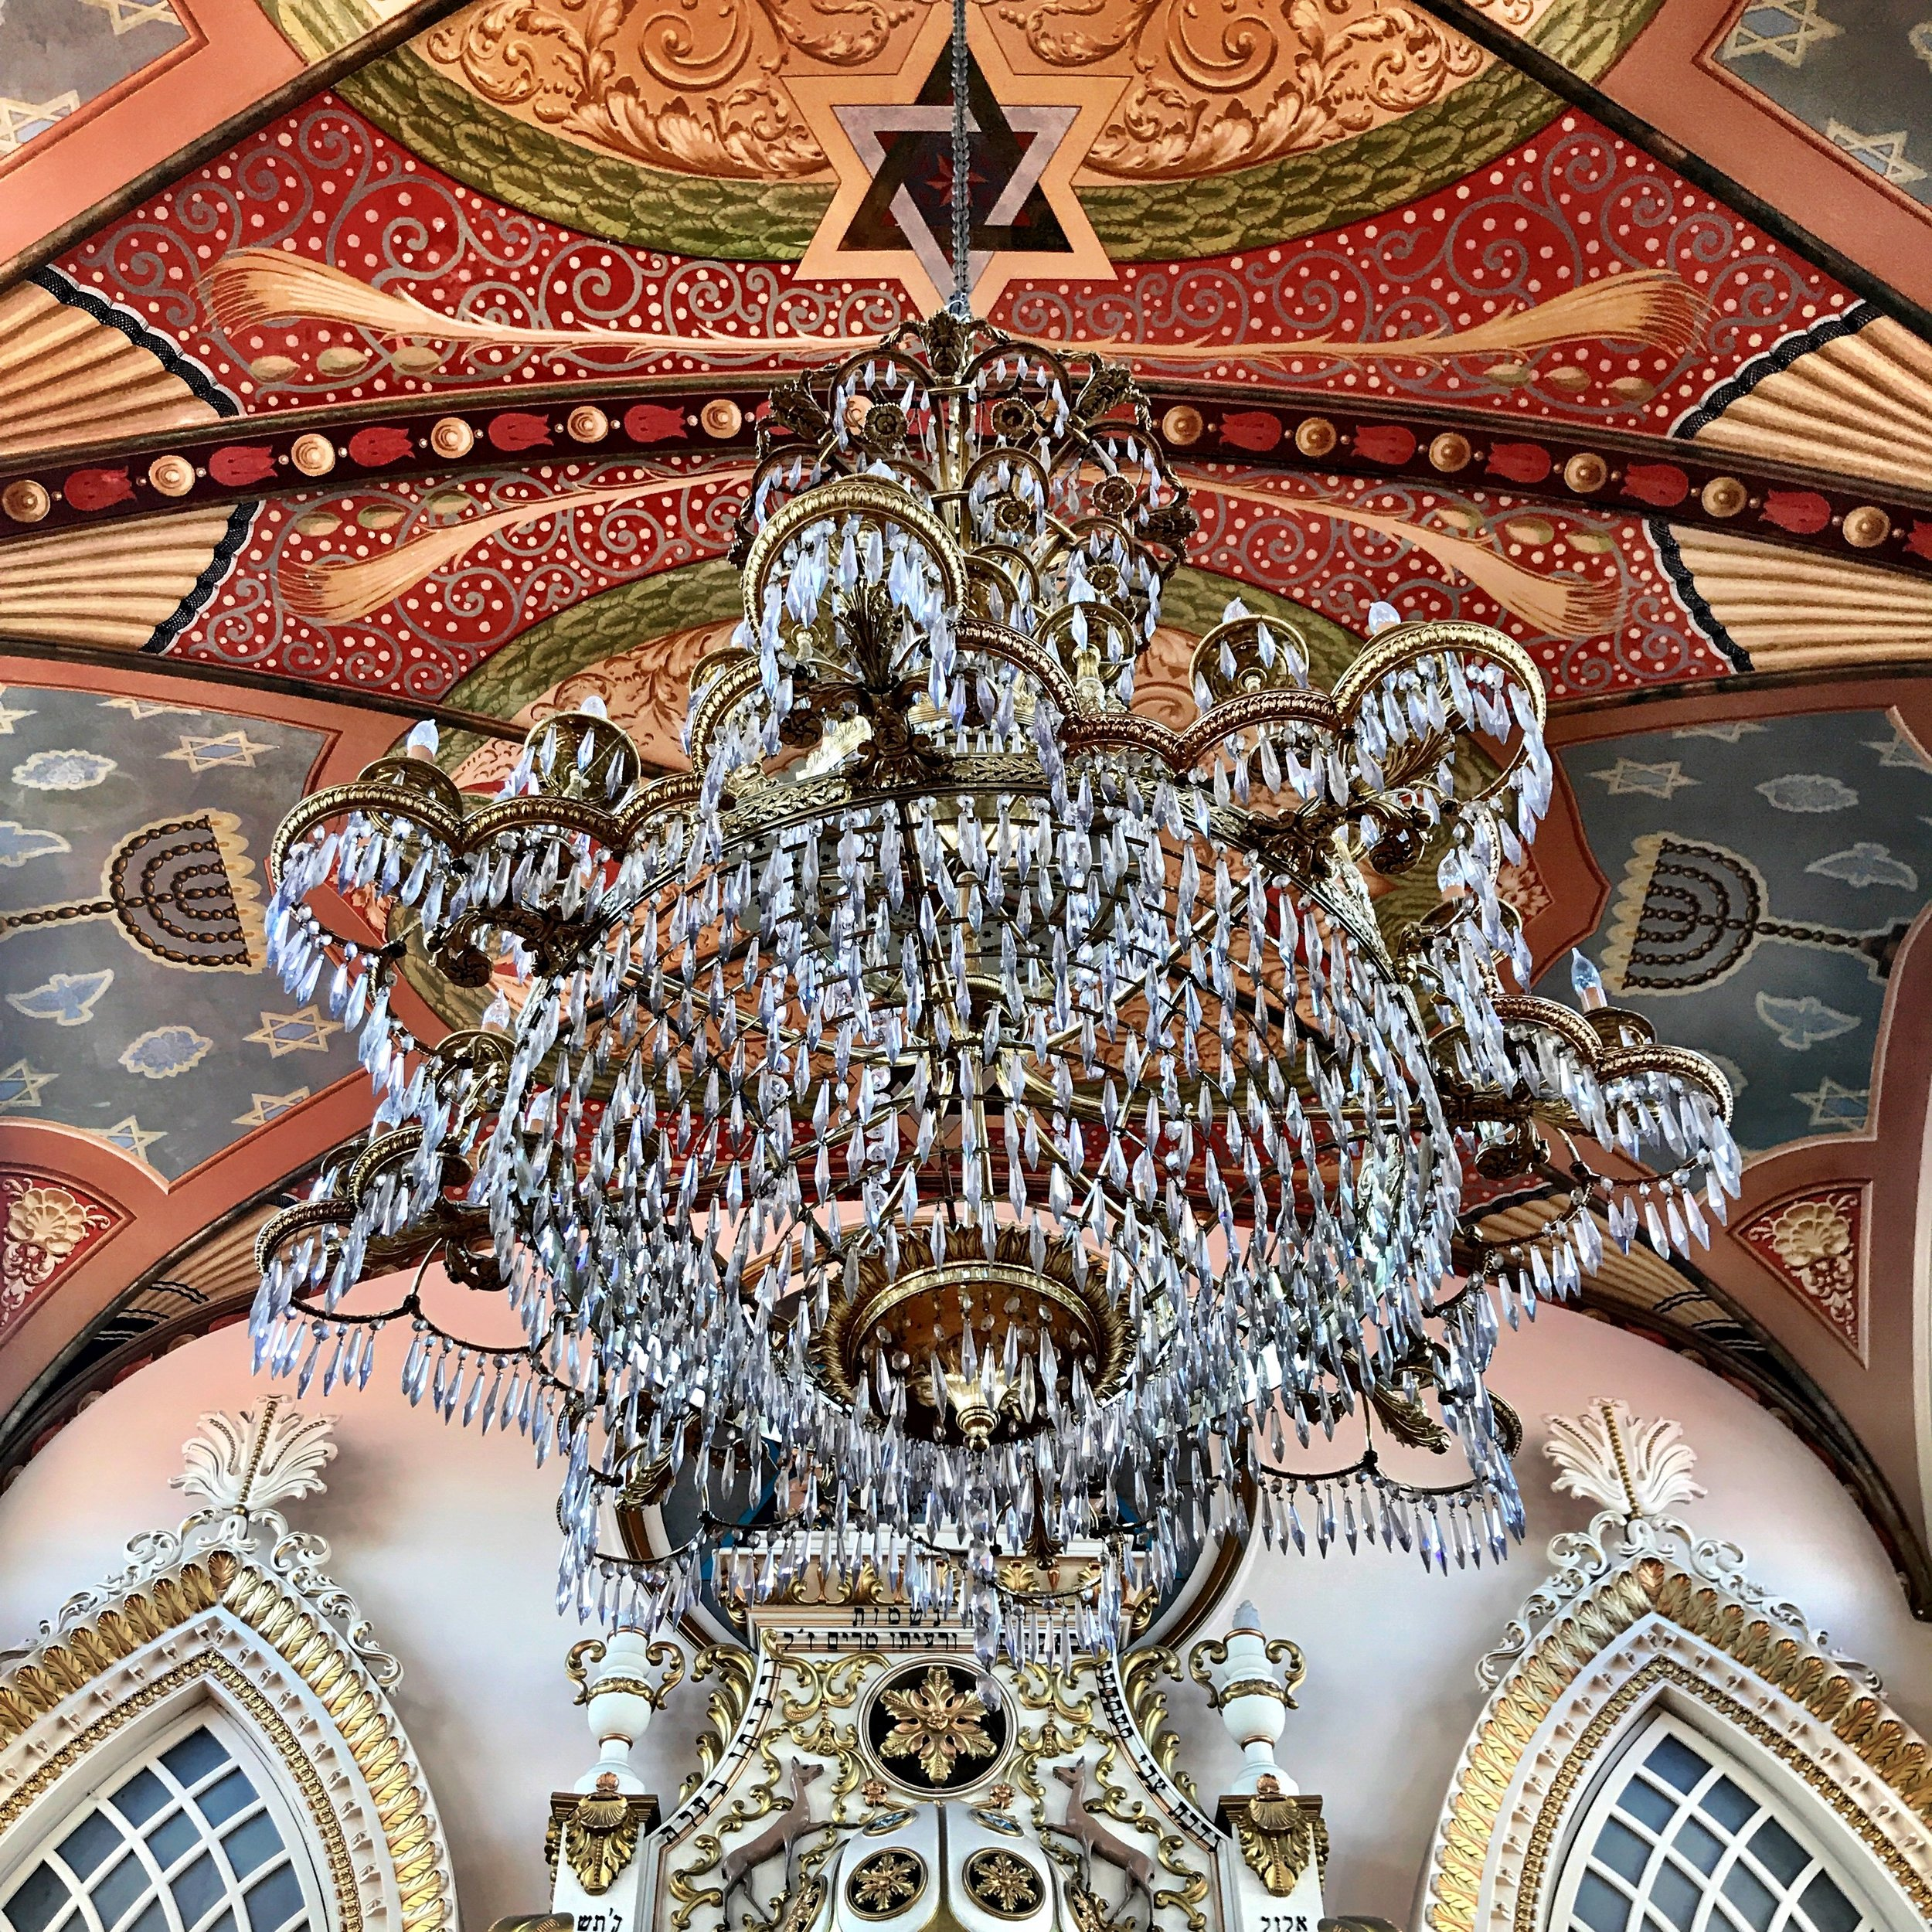 A chandelier hangs above the holy ark